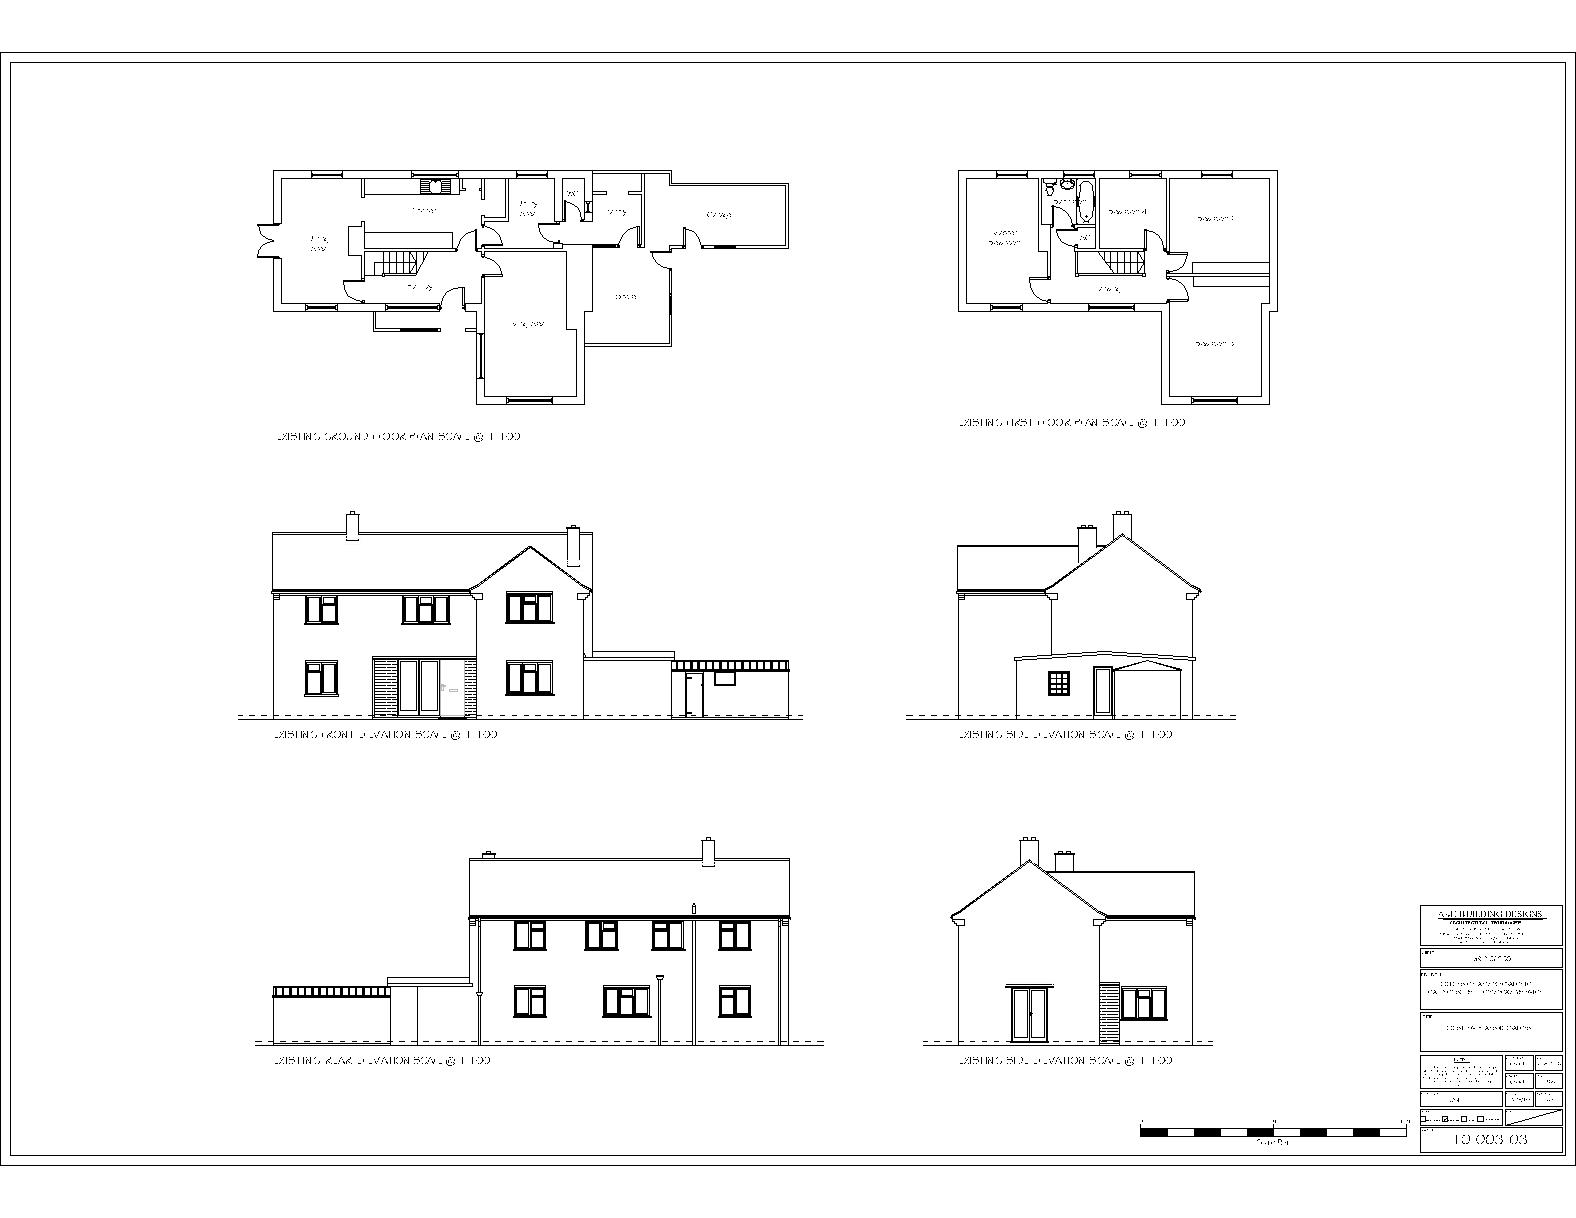 Residential building plan and elevation joy studio for Elevation plans for buildings